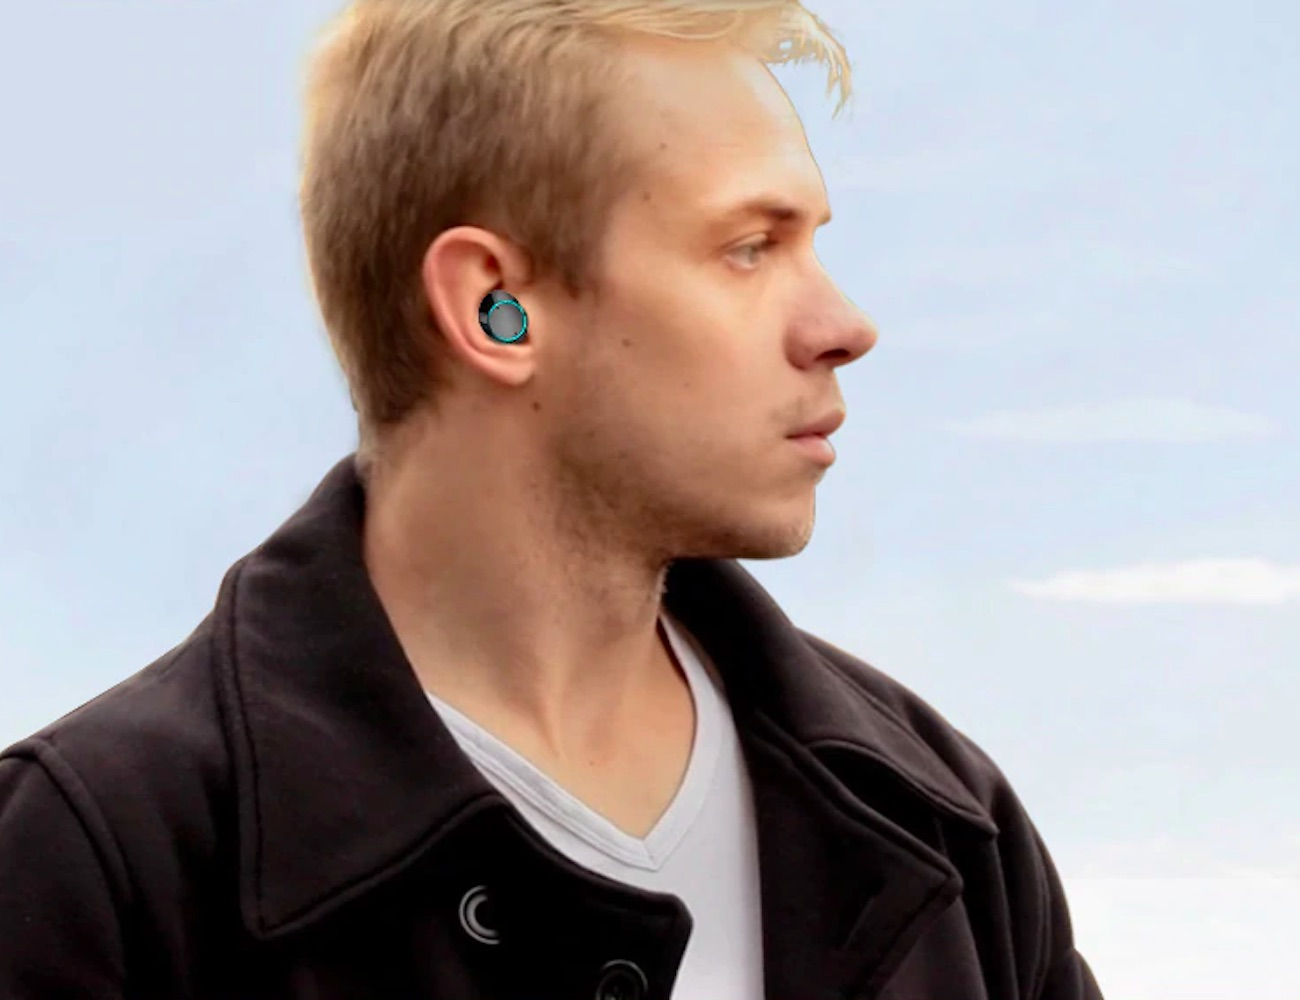 Mifa X1 Twin Stereo Wireless Earbuds give you great audio on the go